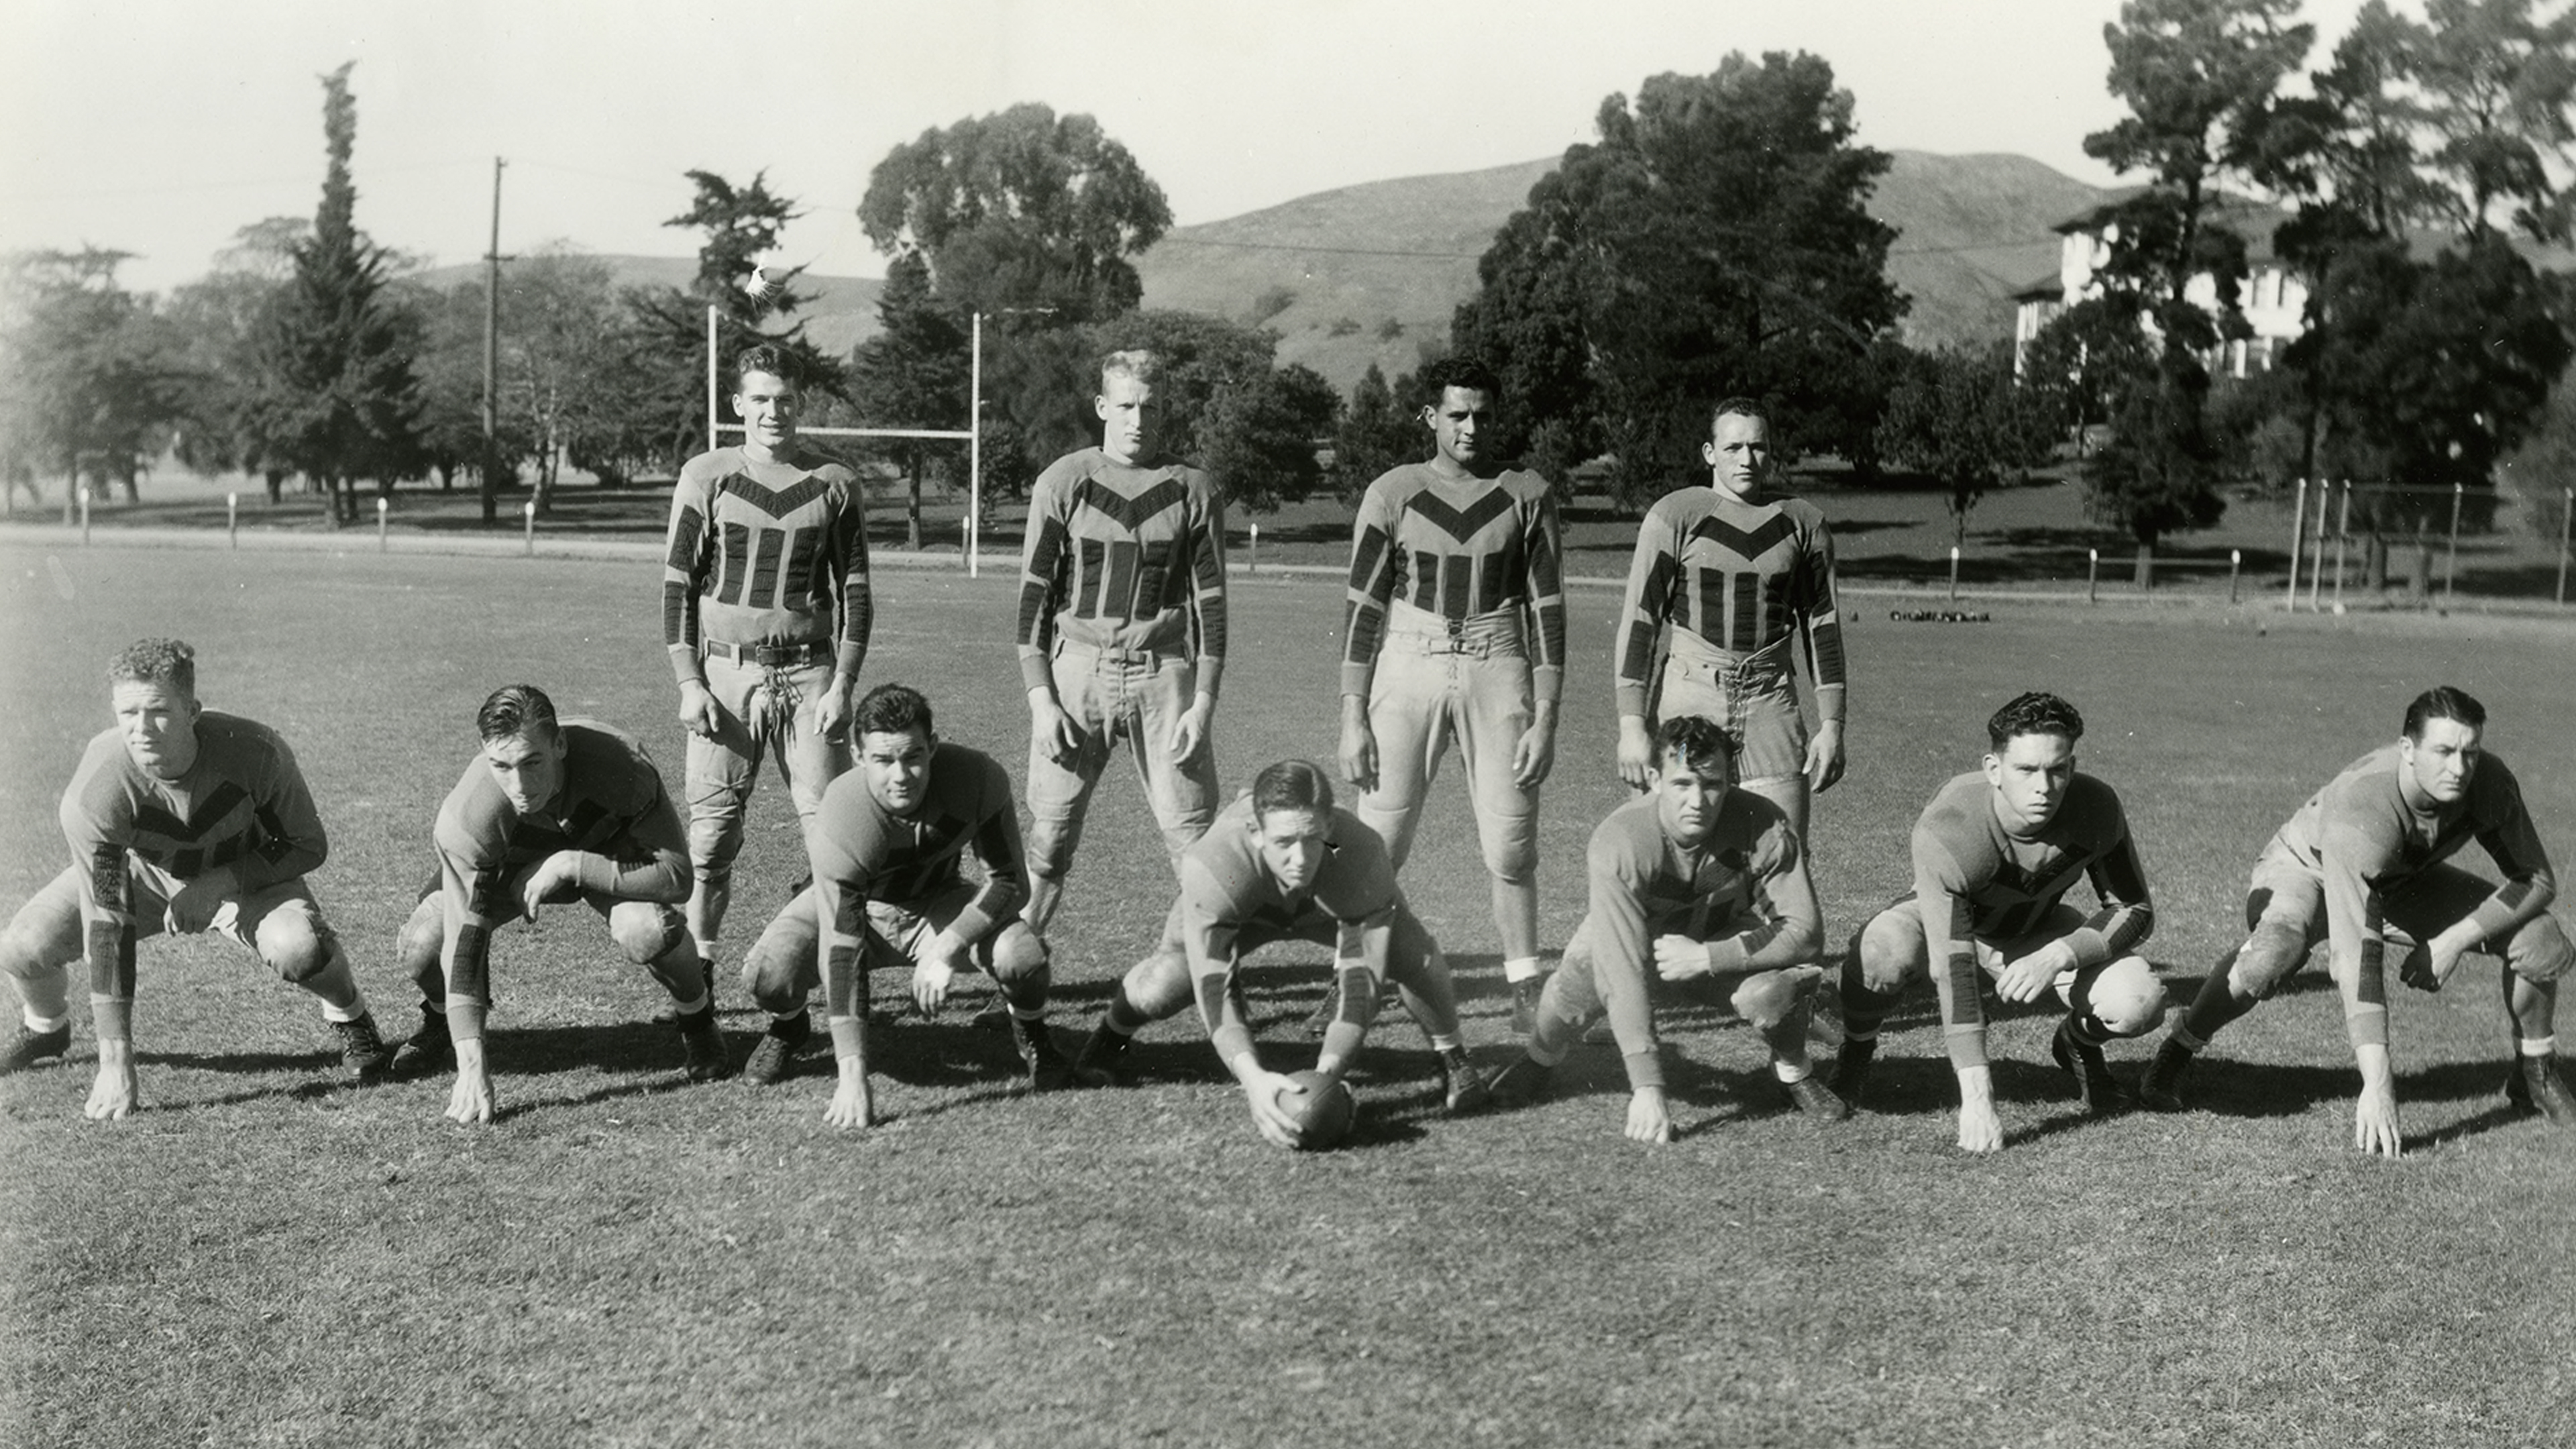 University Archives photo of Mustang football players